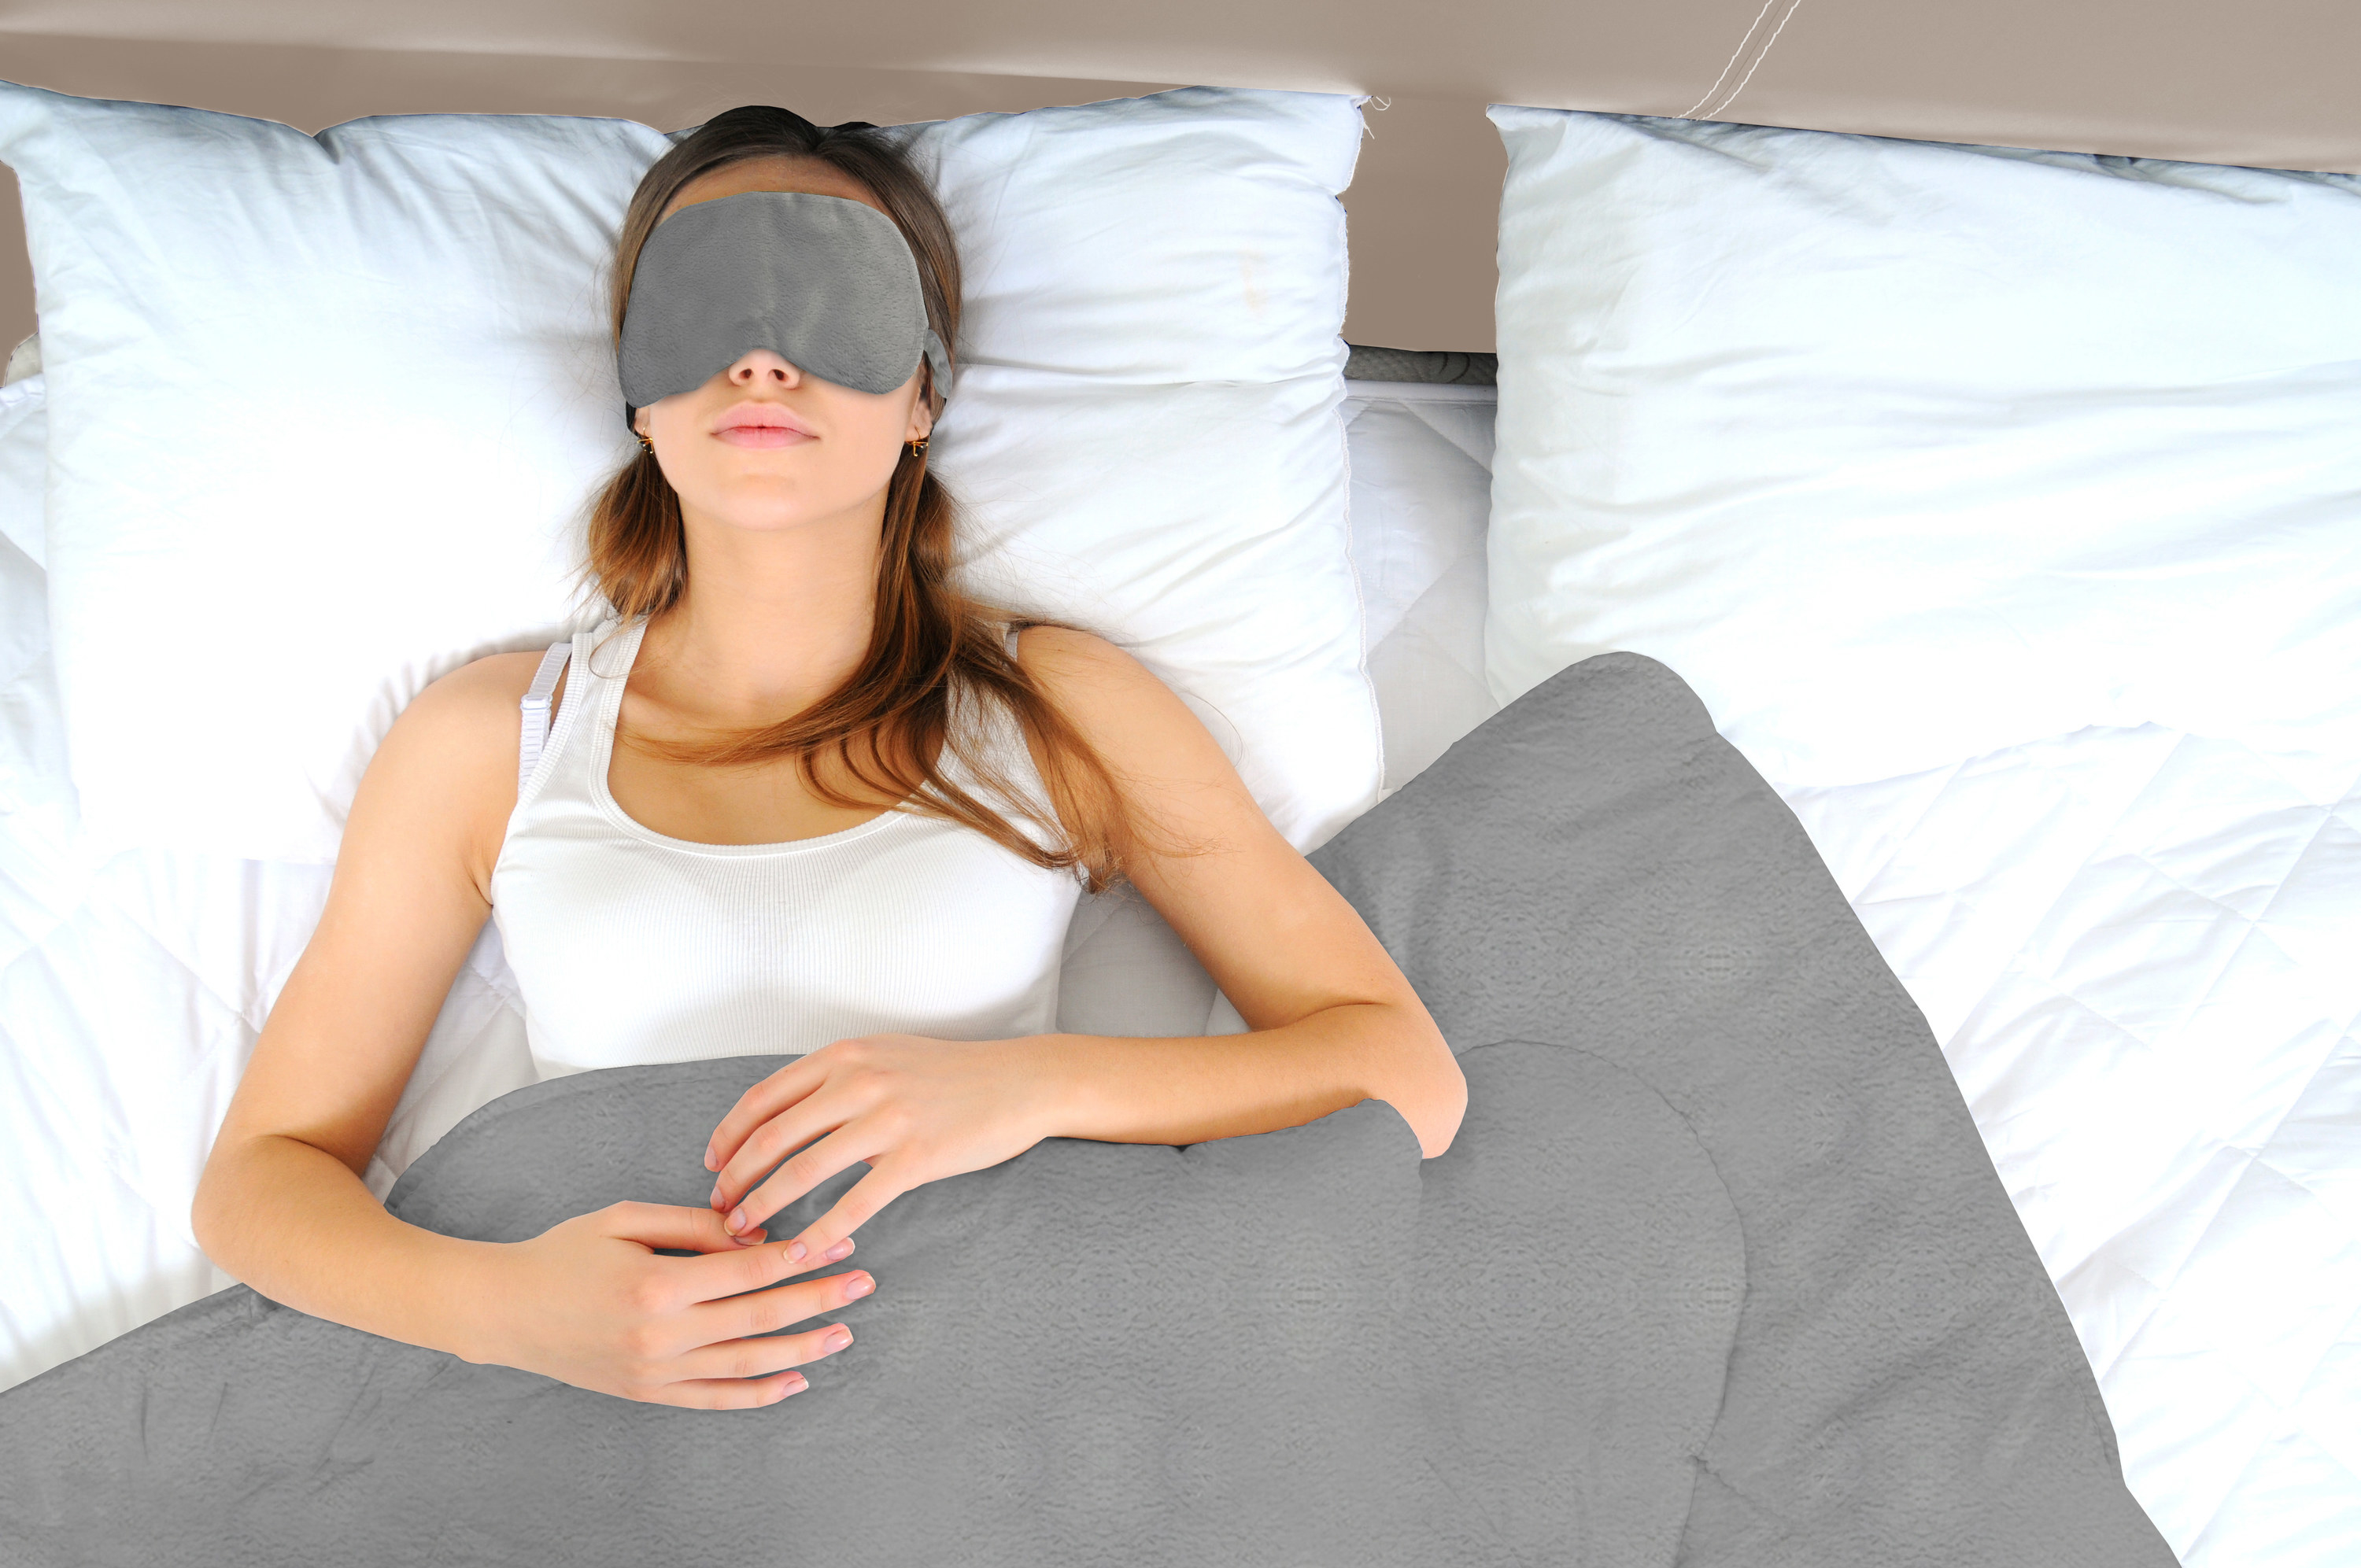 person wearing a sleeping eye mask and under a weighted blanket